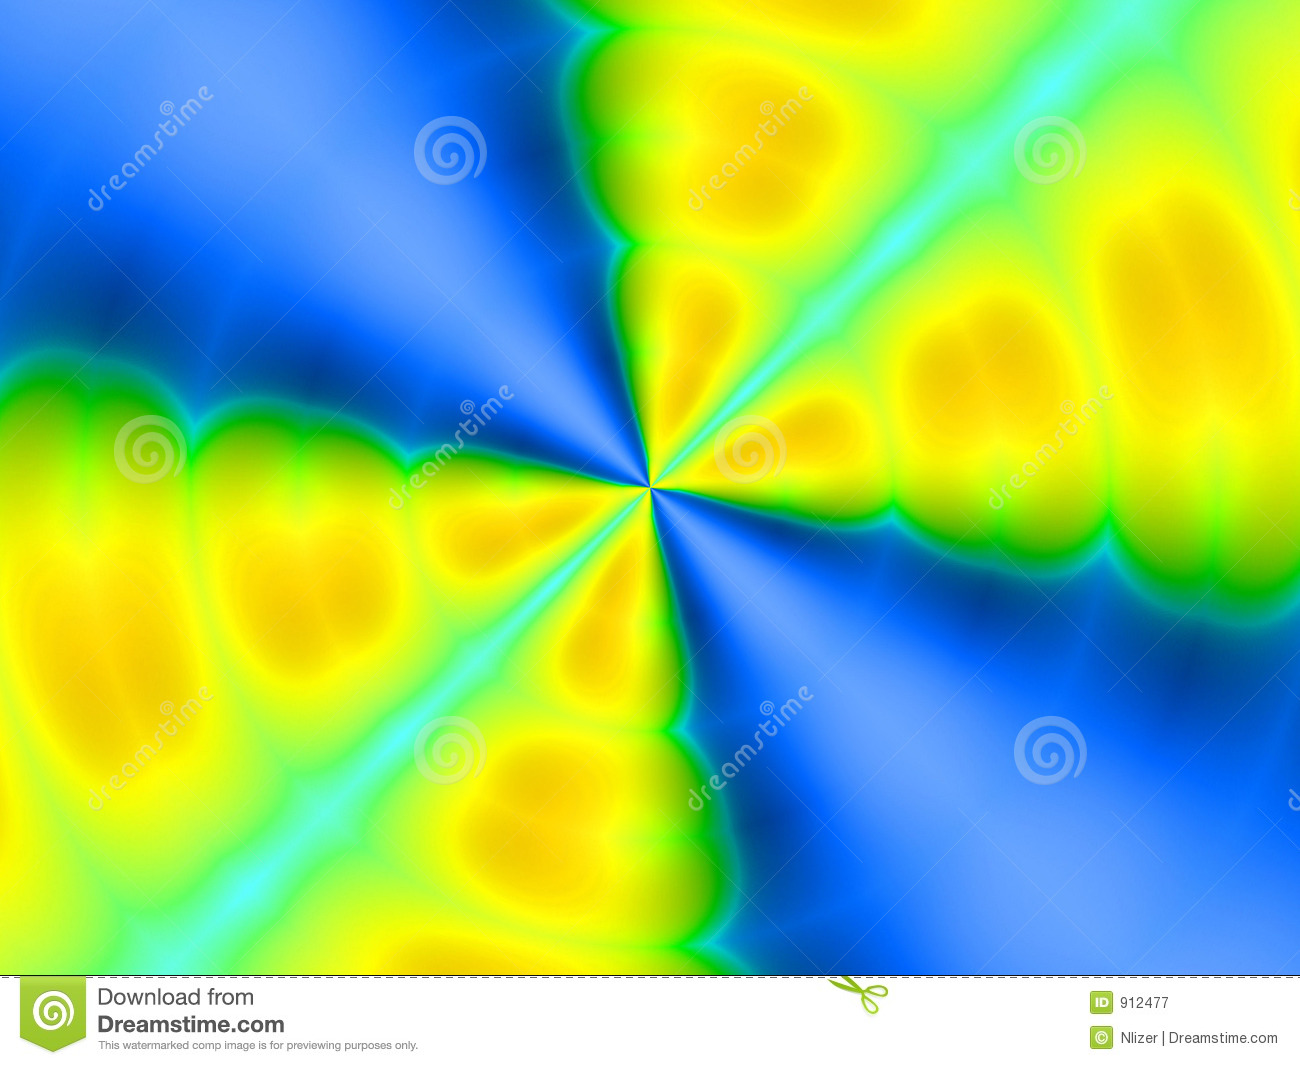 blue yellow background wallpaper royalty free stock